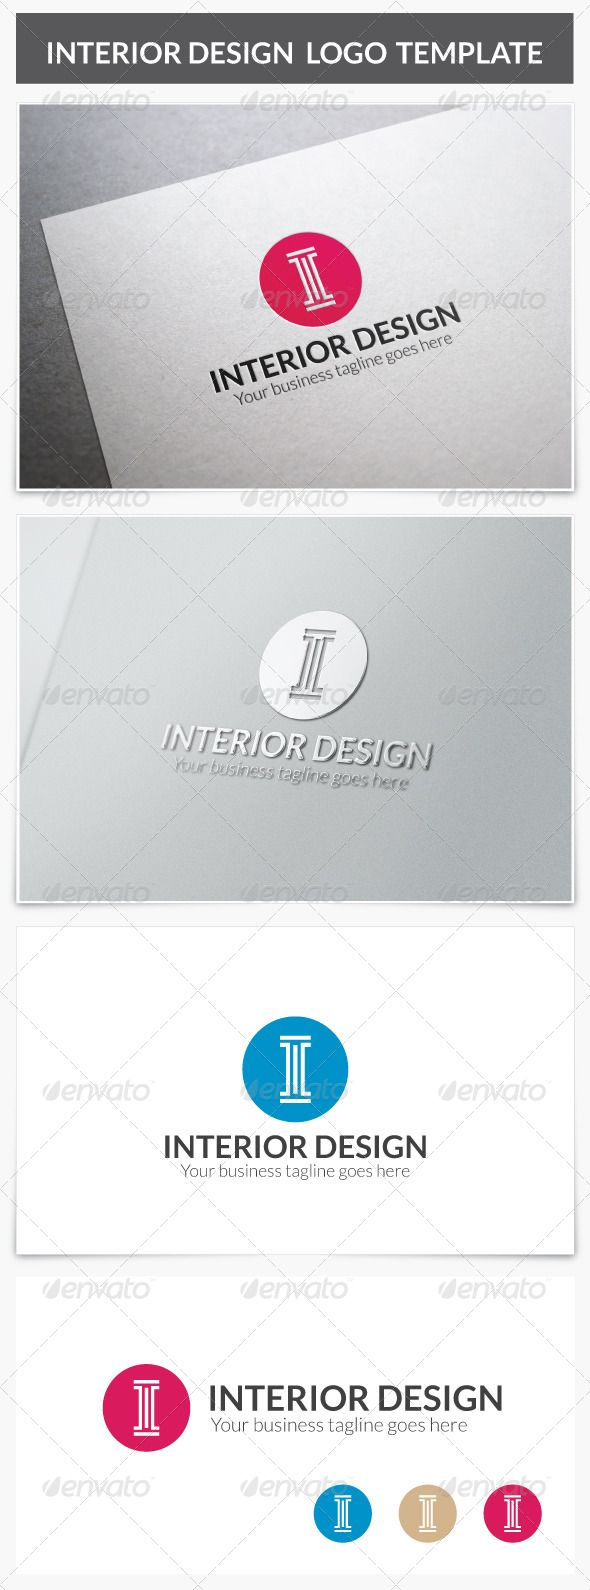 Interior Design Logo Photoshop PSD Architecture O Available Here